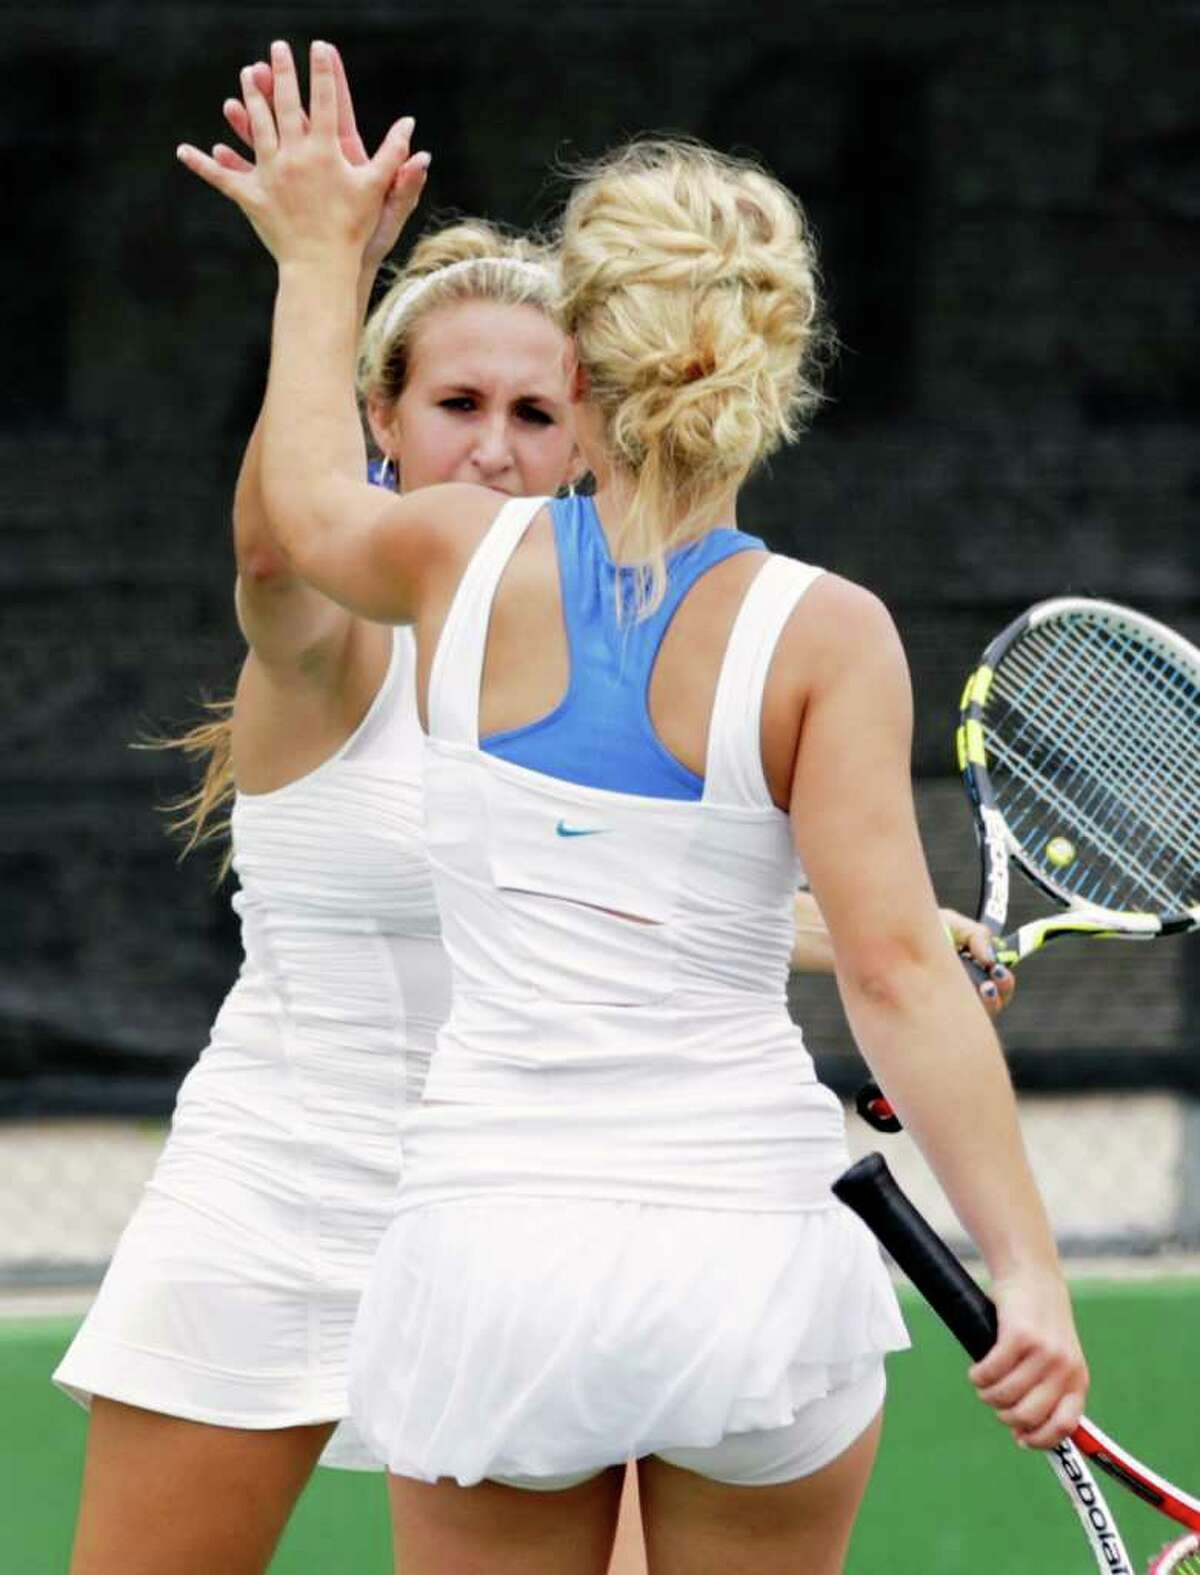 Sports daily - Sisters Courtney, left, and Haylie Wild slap hands after a point during the Girls Doubles against Judson in the Region IV-5A tennis tournament finals at McFarlin Tennis Center, Wednesday, April 20, 2011. Photo Bob Owen/rowen@express-news.net